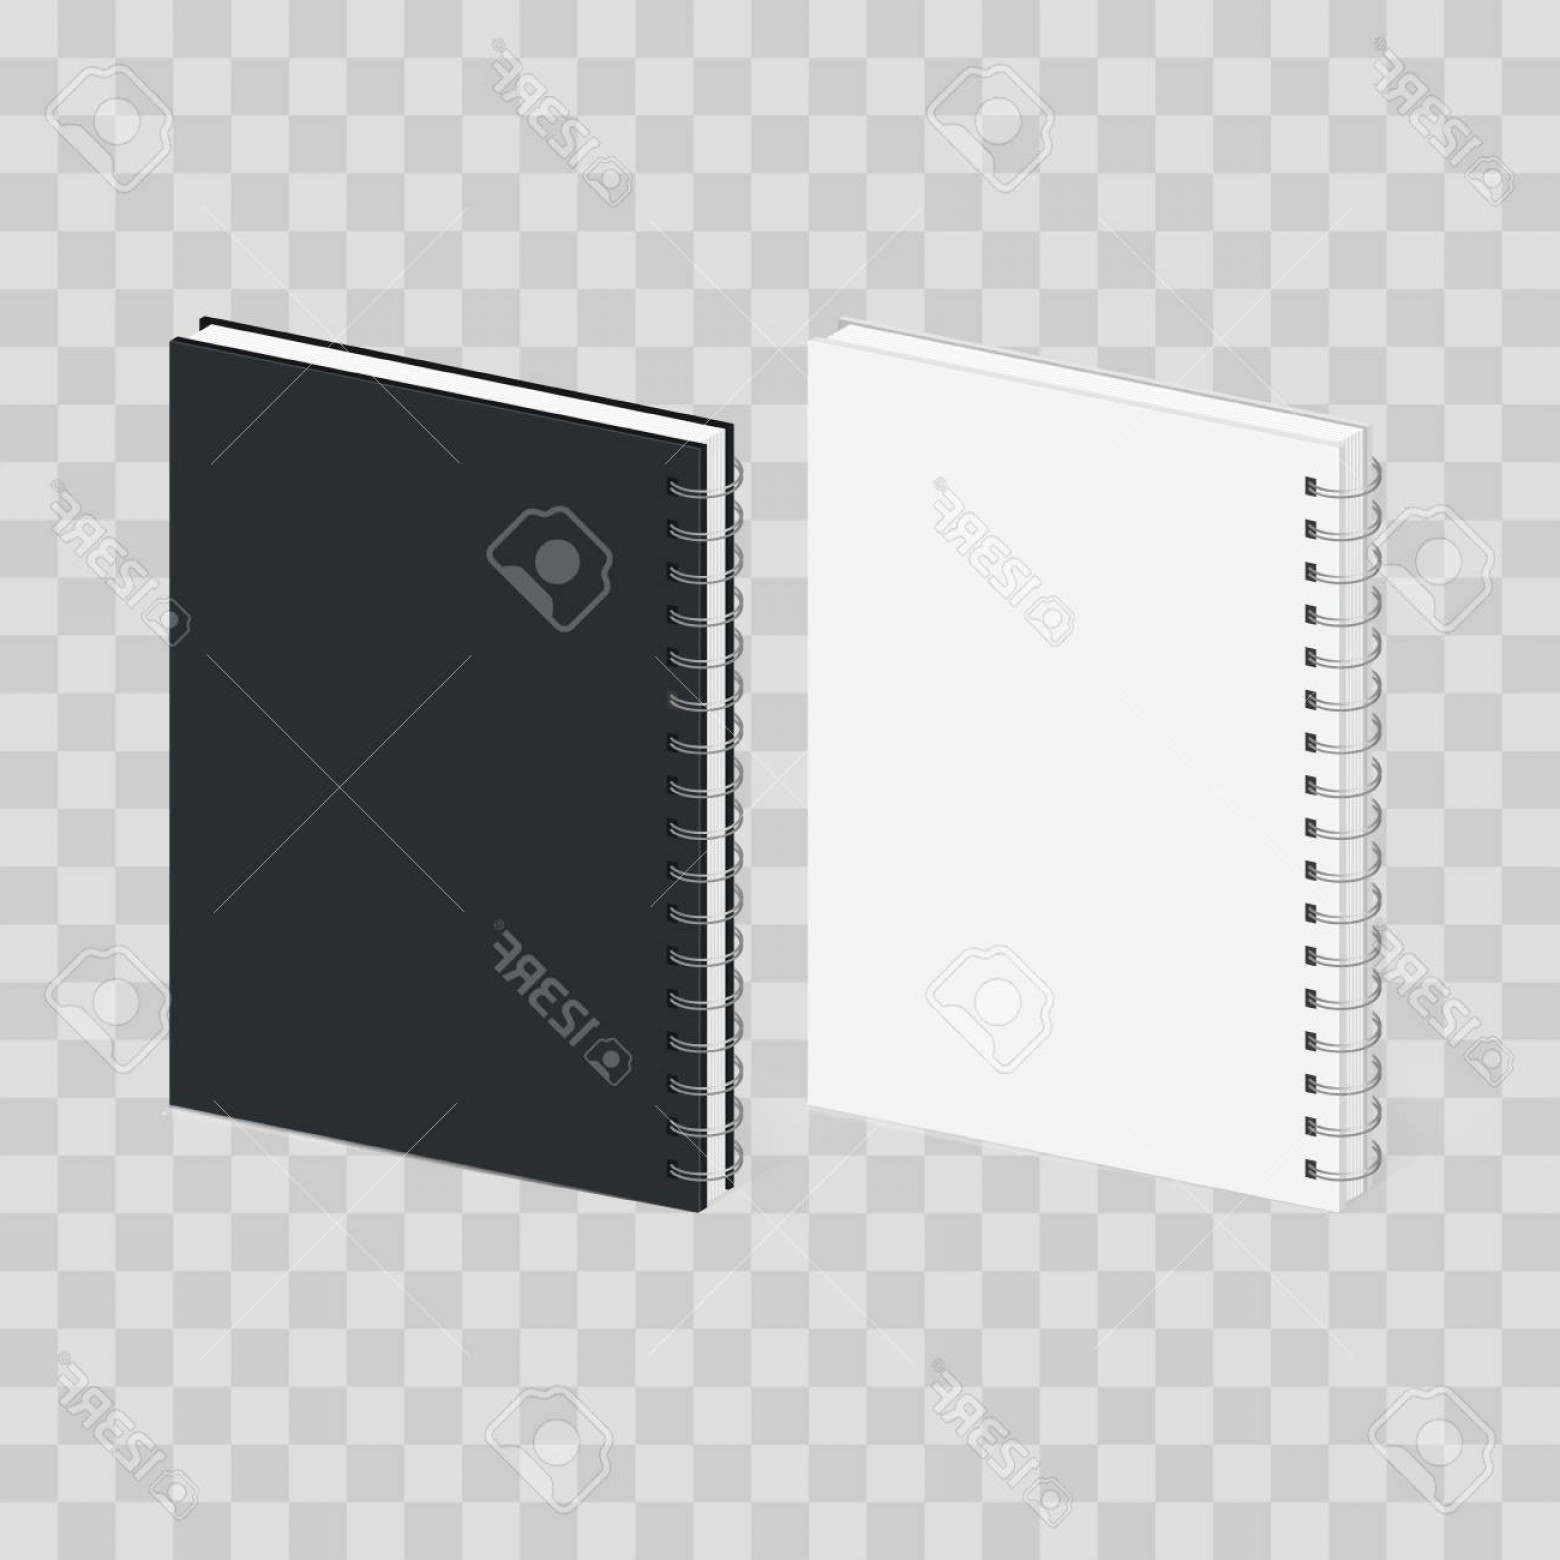 Checker Vector Template: Photostock Vector Blank Spiral Notebook Template Black And White Covers Isometric View Isolated On Transparent Checker